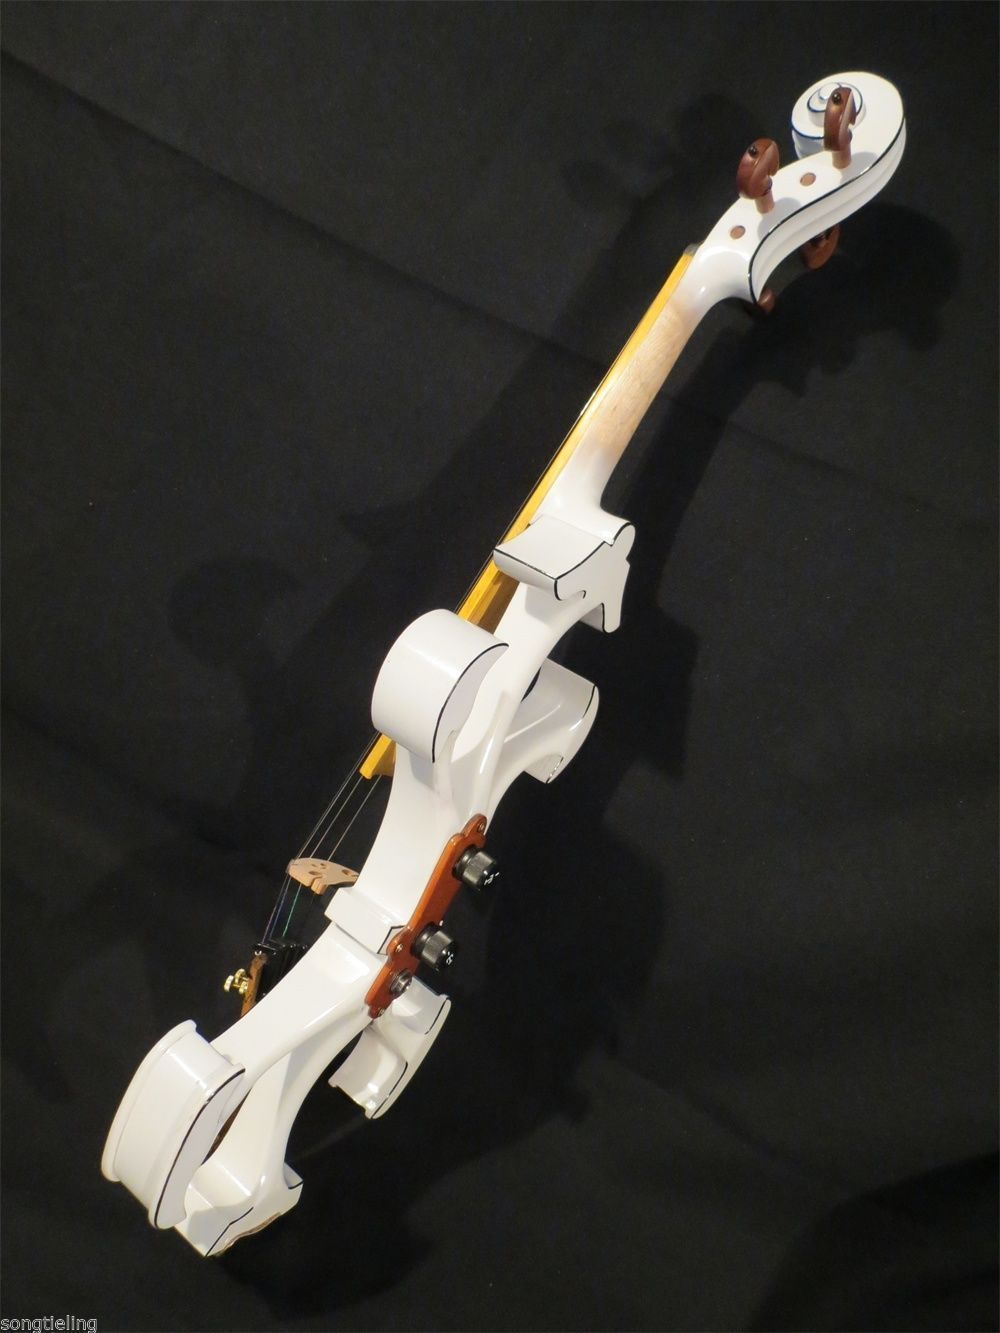 Handmade Brand New White Great Streamline Model 4/4 Electric Violin/Violino Solid Wood String Instrument Rosin Case Bow Included image